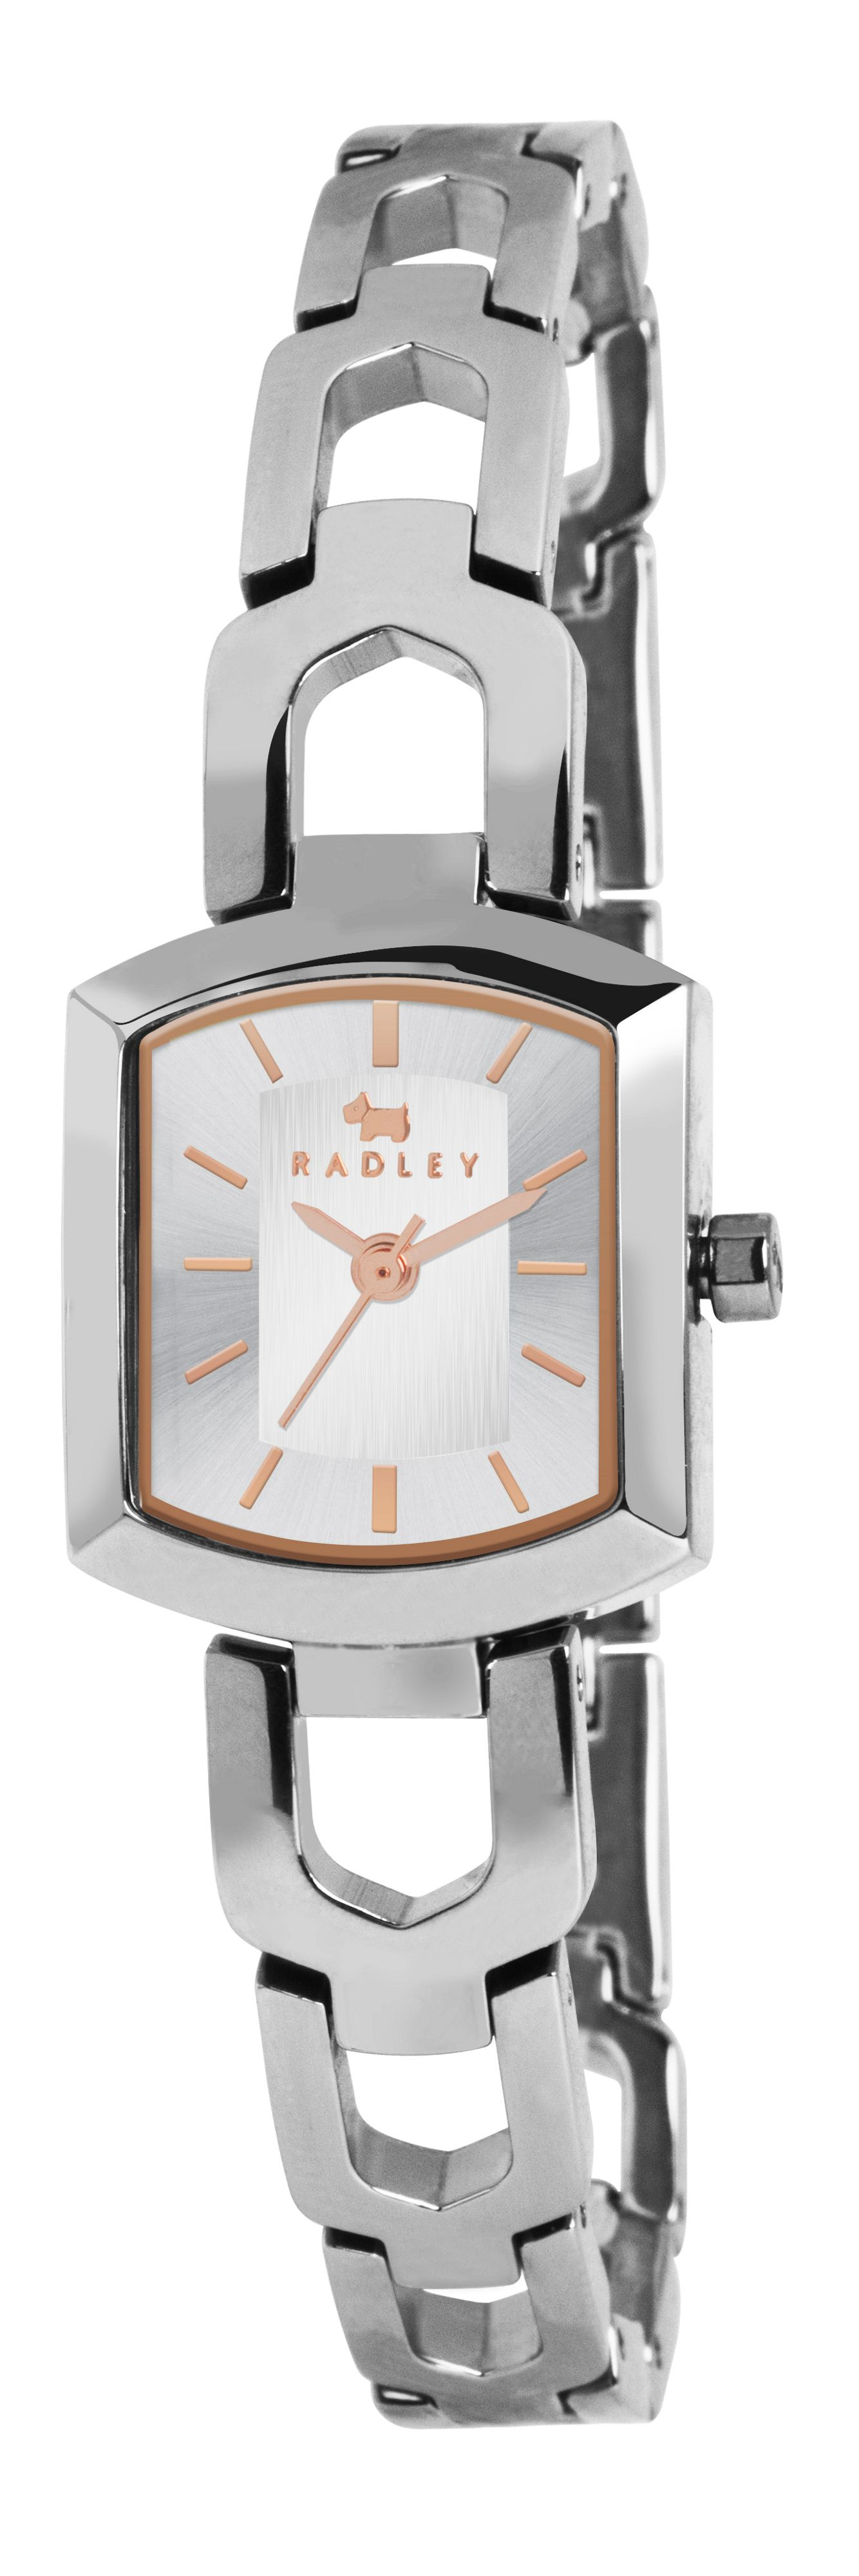 Radley stainless steel grosvenor bracelet watch